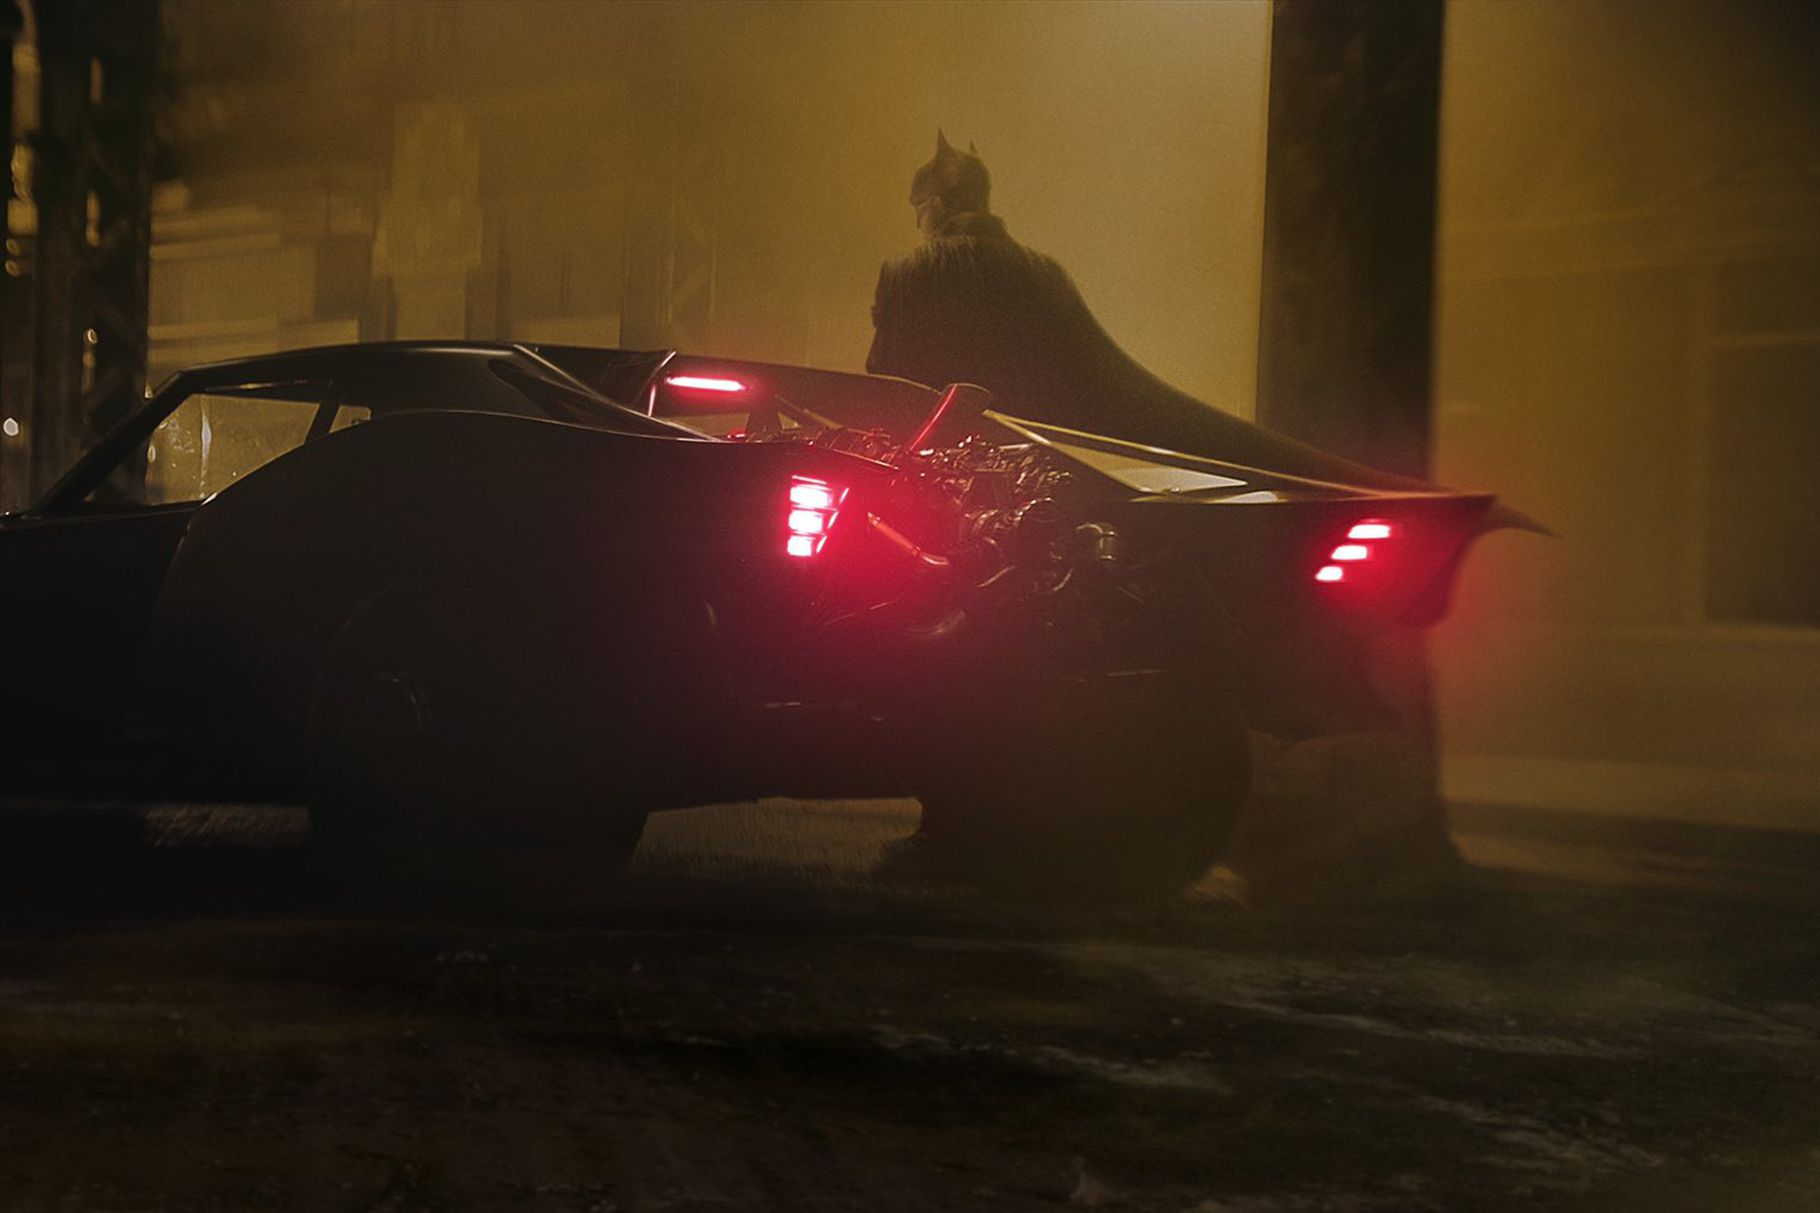 'The Batman' Pushes Release Date to October 2021 Due to Coronavirus